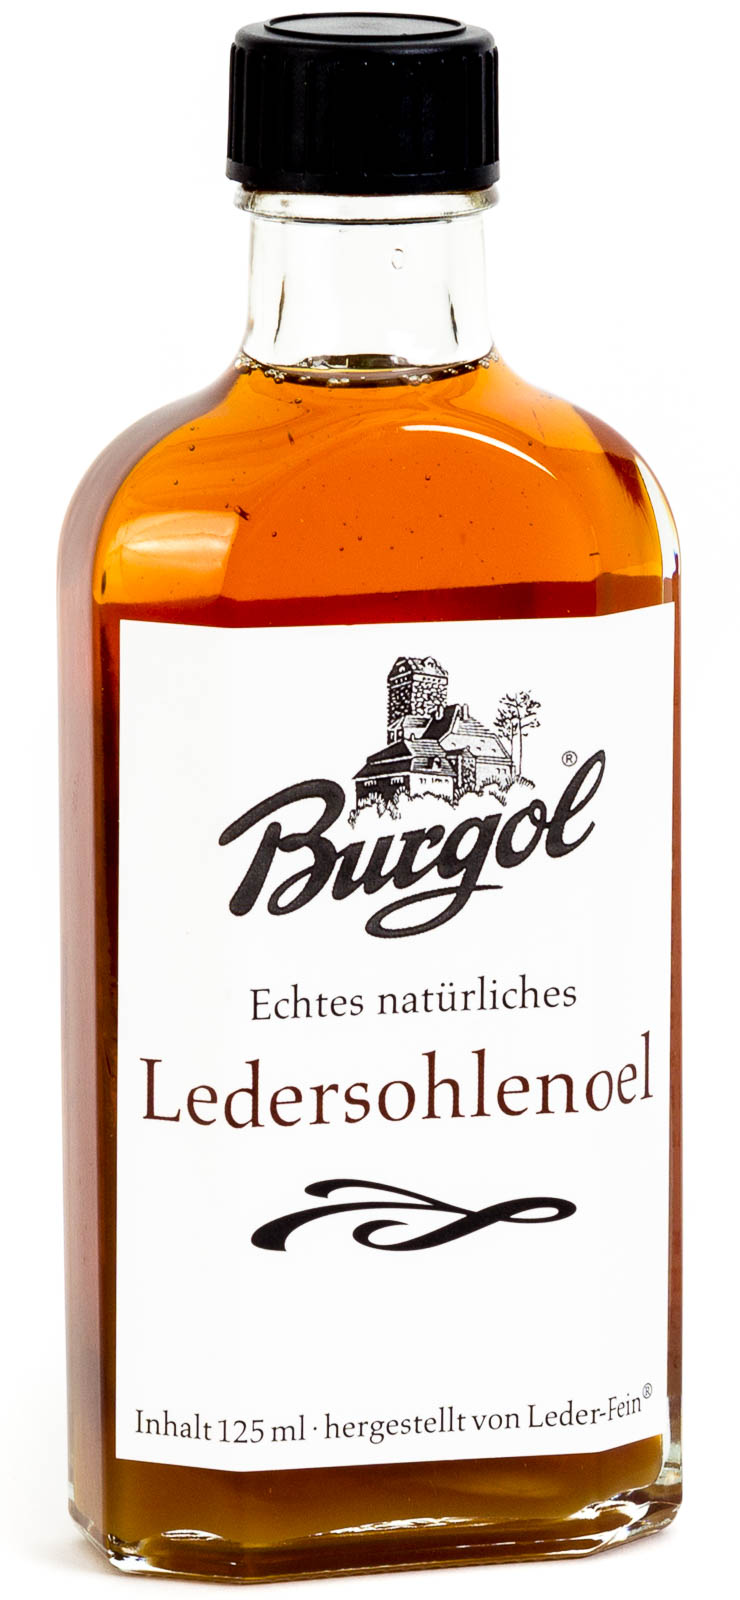 Burgol leather sole oil 125ml